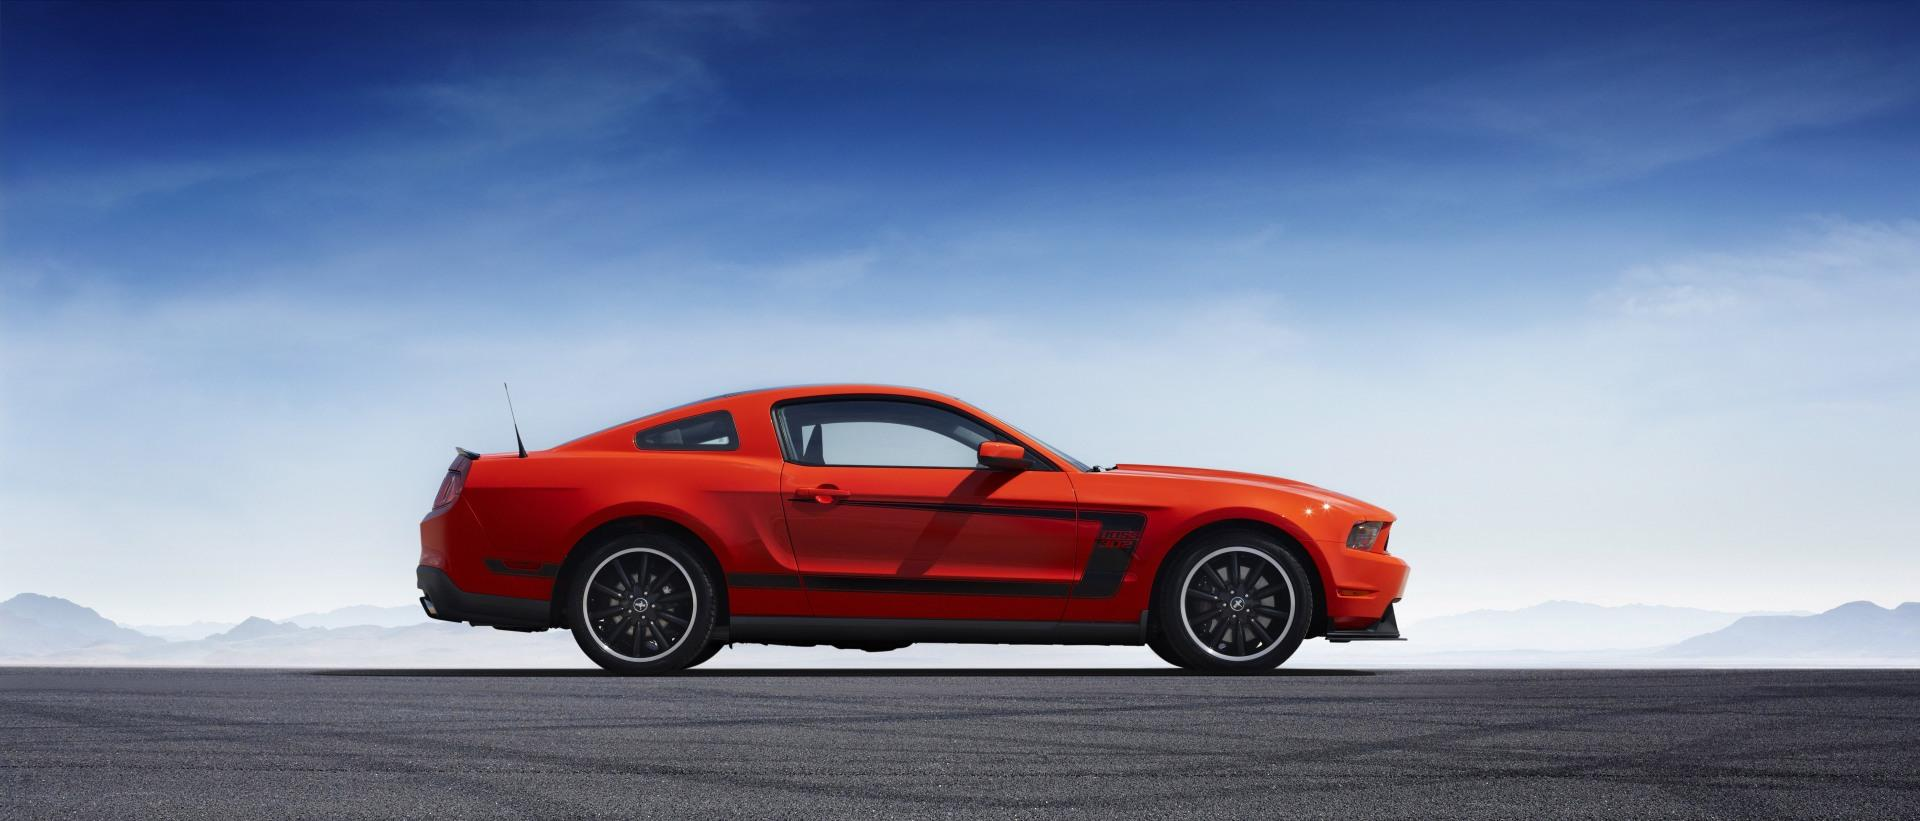 2012 Ford Mustang Boss 302 News and Information